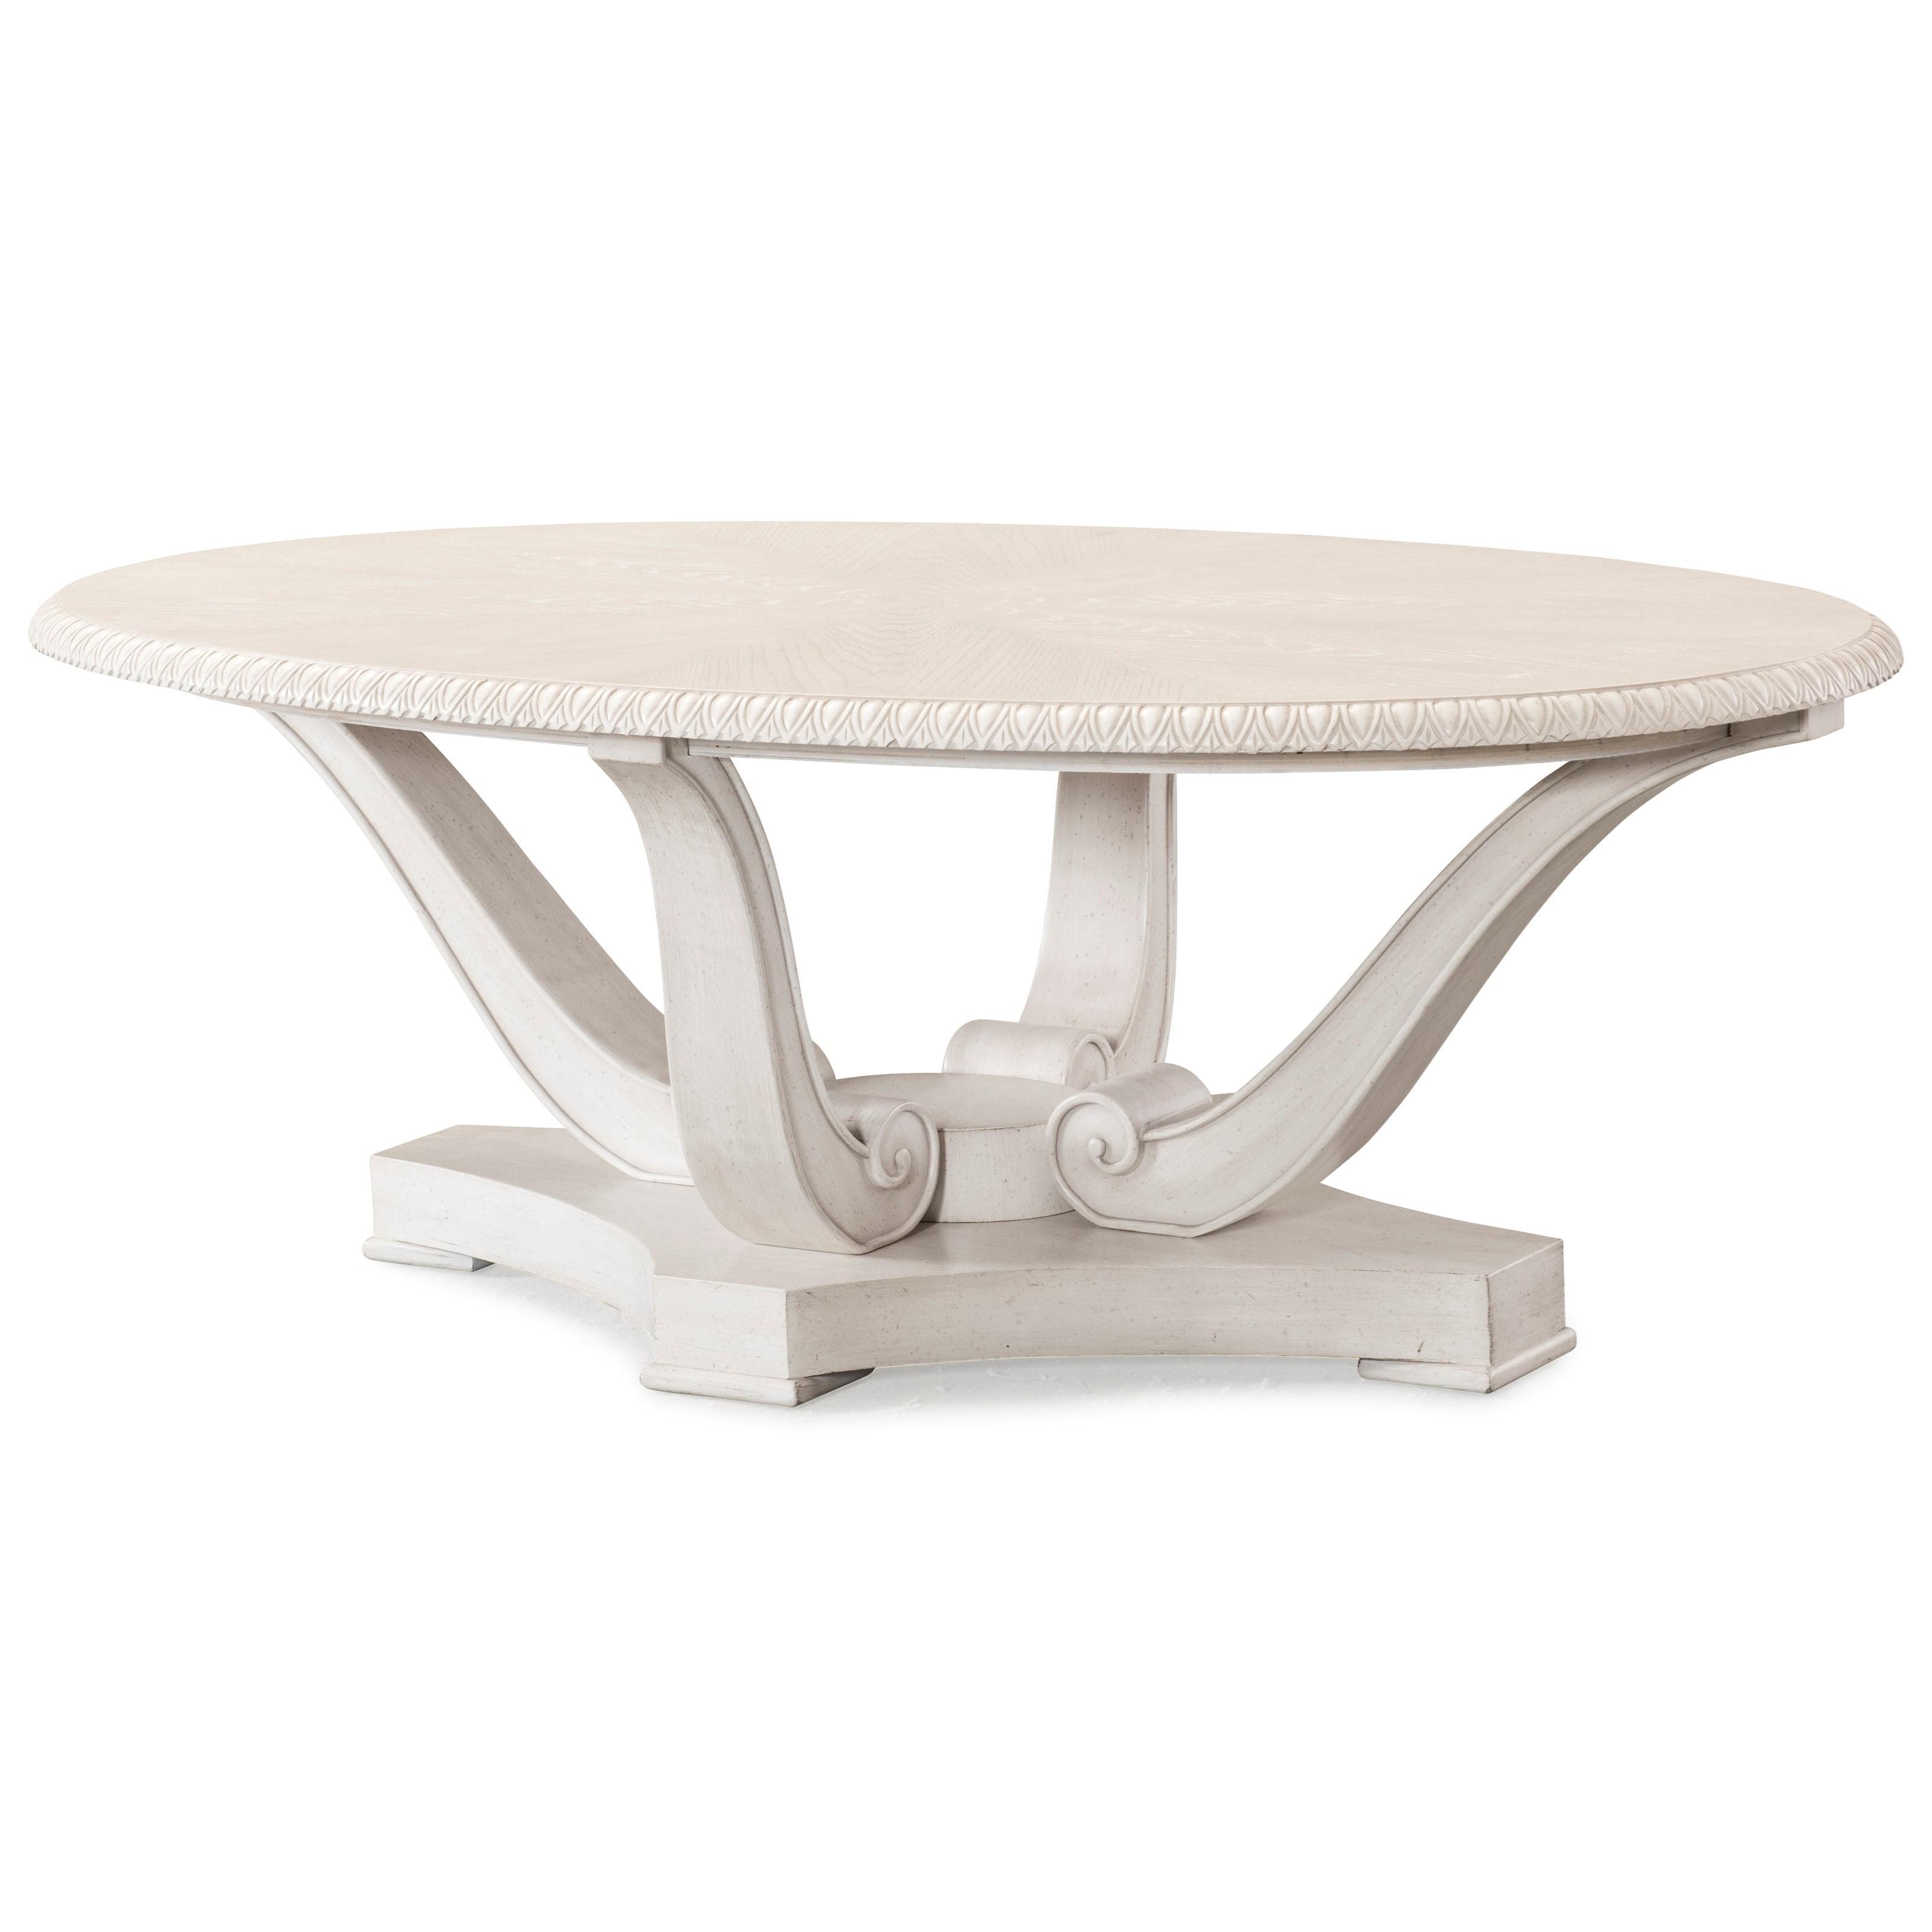 Jasper County Newton Cocktail Table by Trisha Yearwood Home Collection by Klaussner at Darvin Furniture